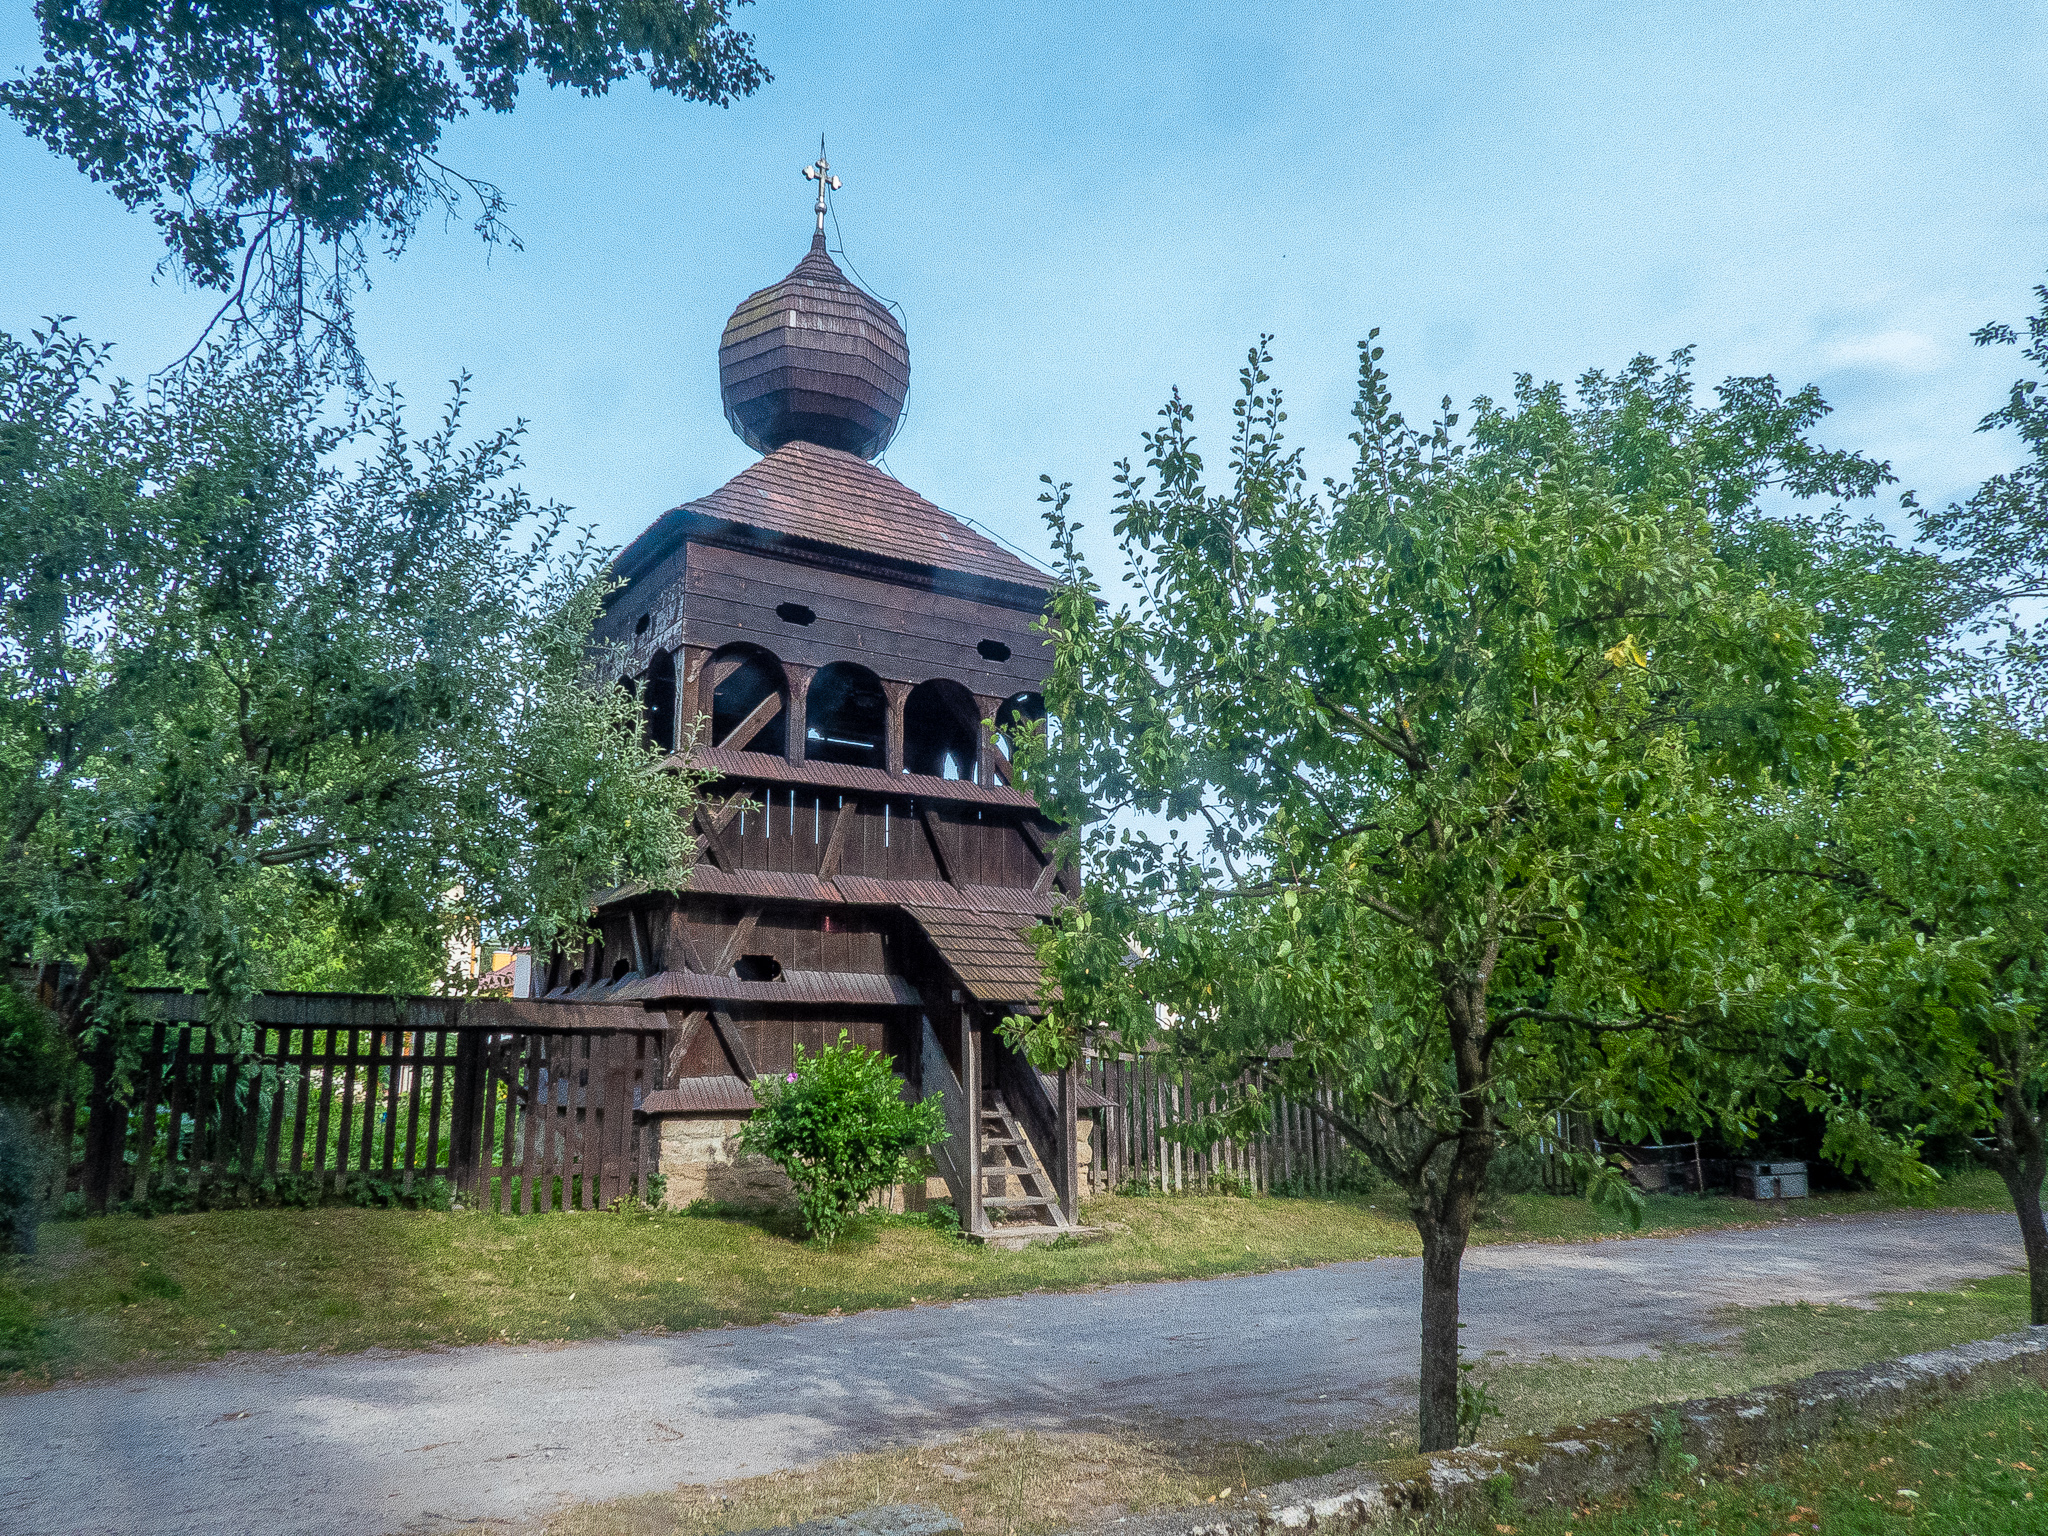 Hronsek Wooden Church Bell Tower